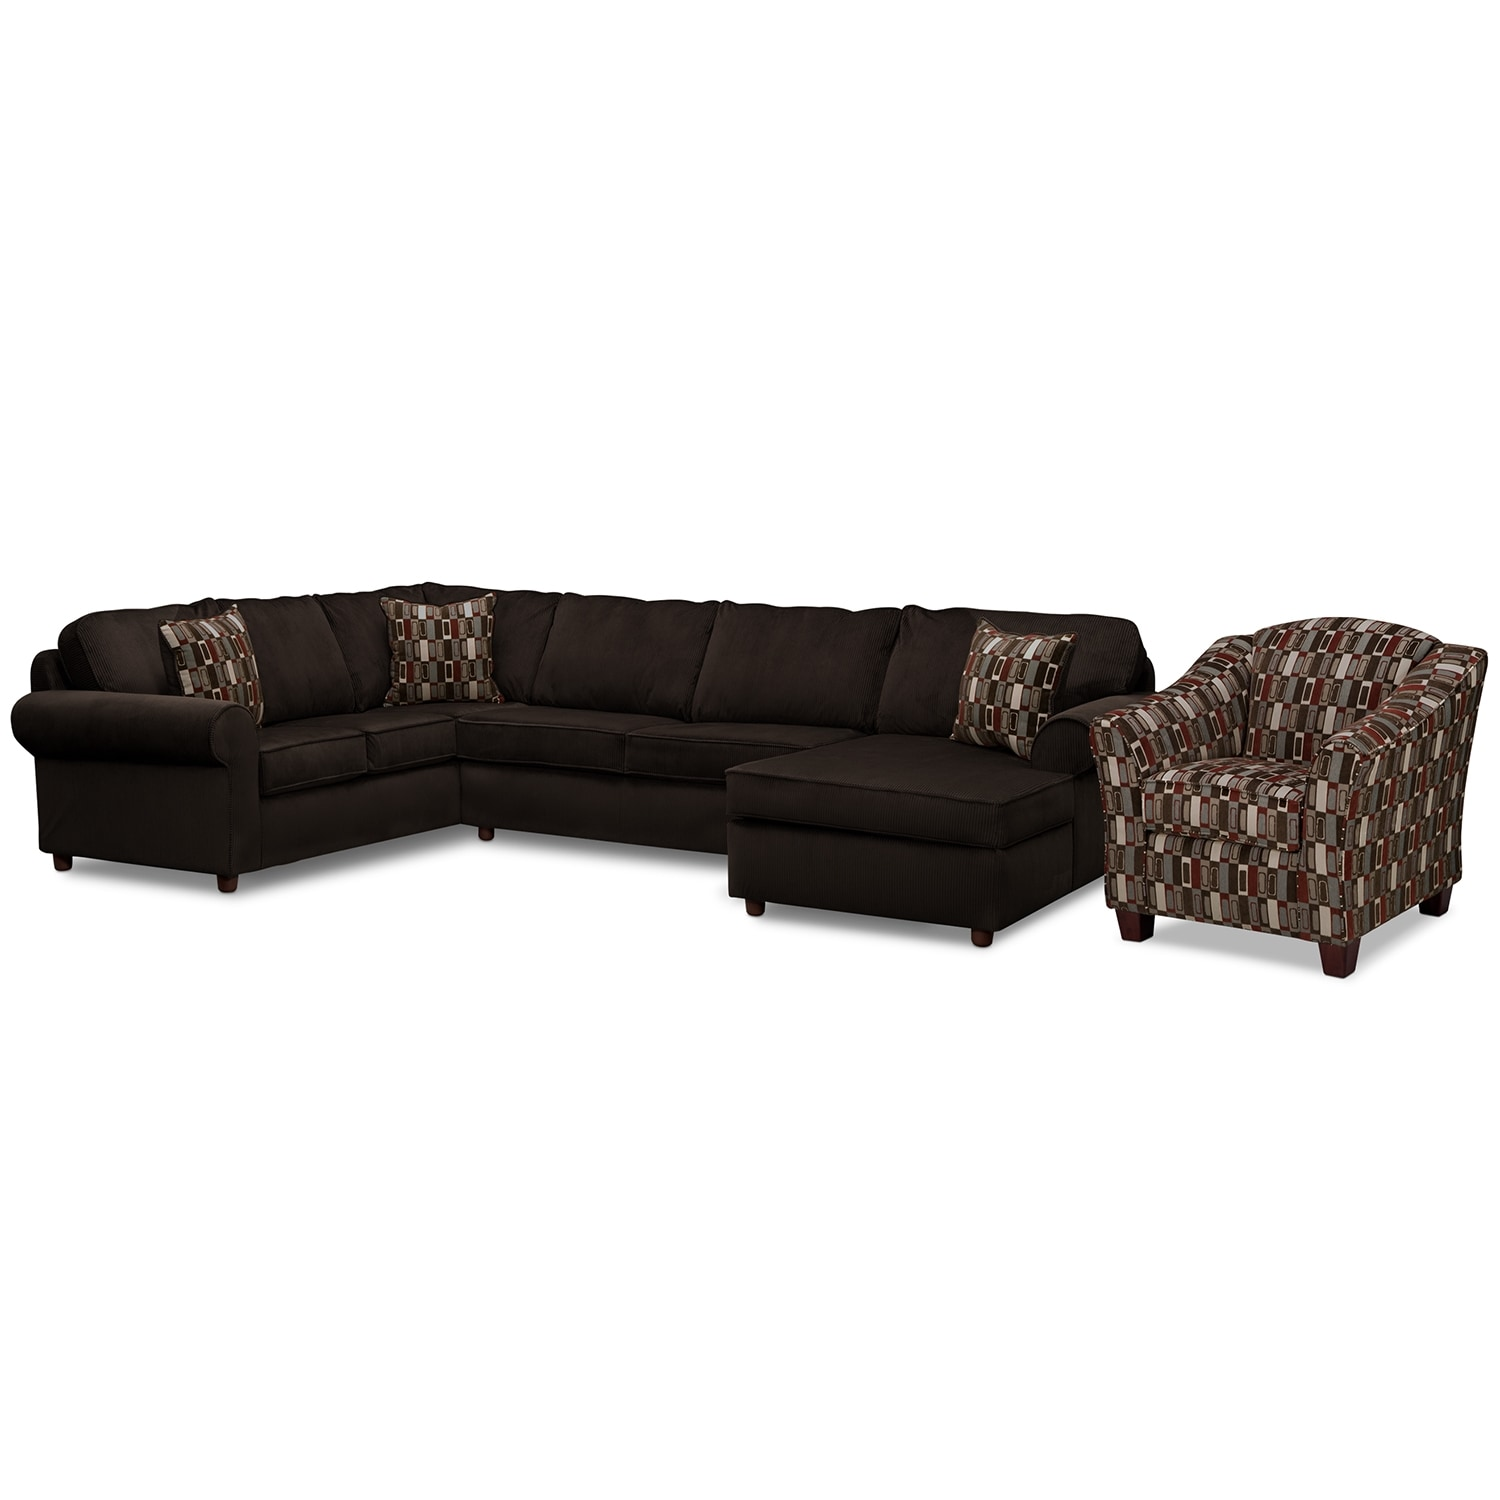 [Monarch 3 Pc. Sectional and Accent Chair]